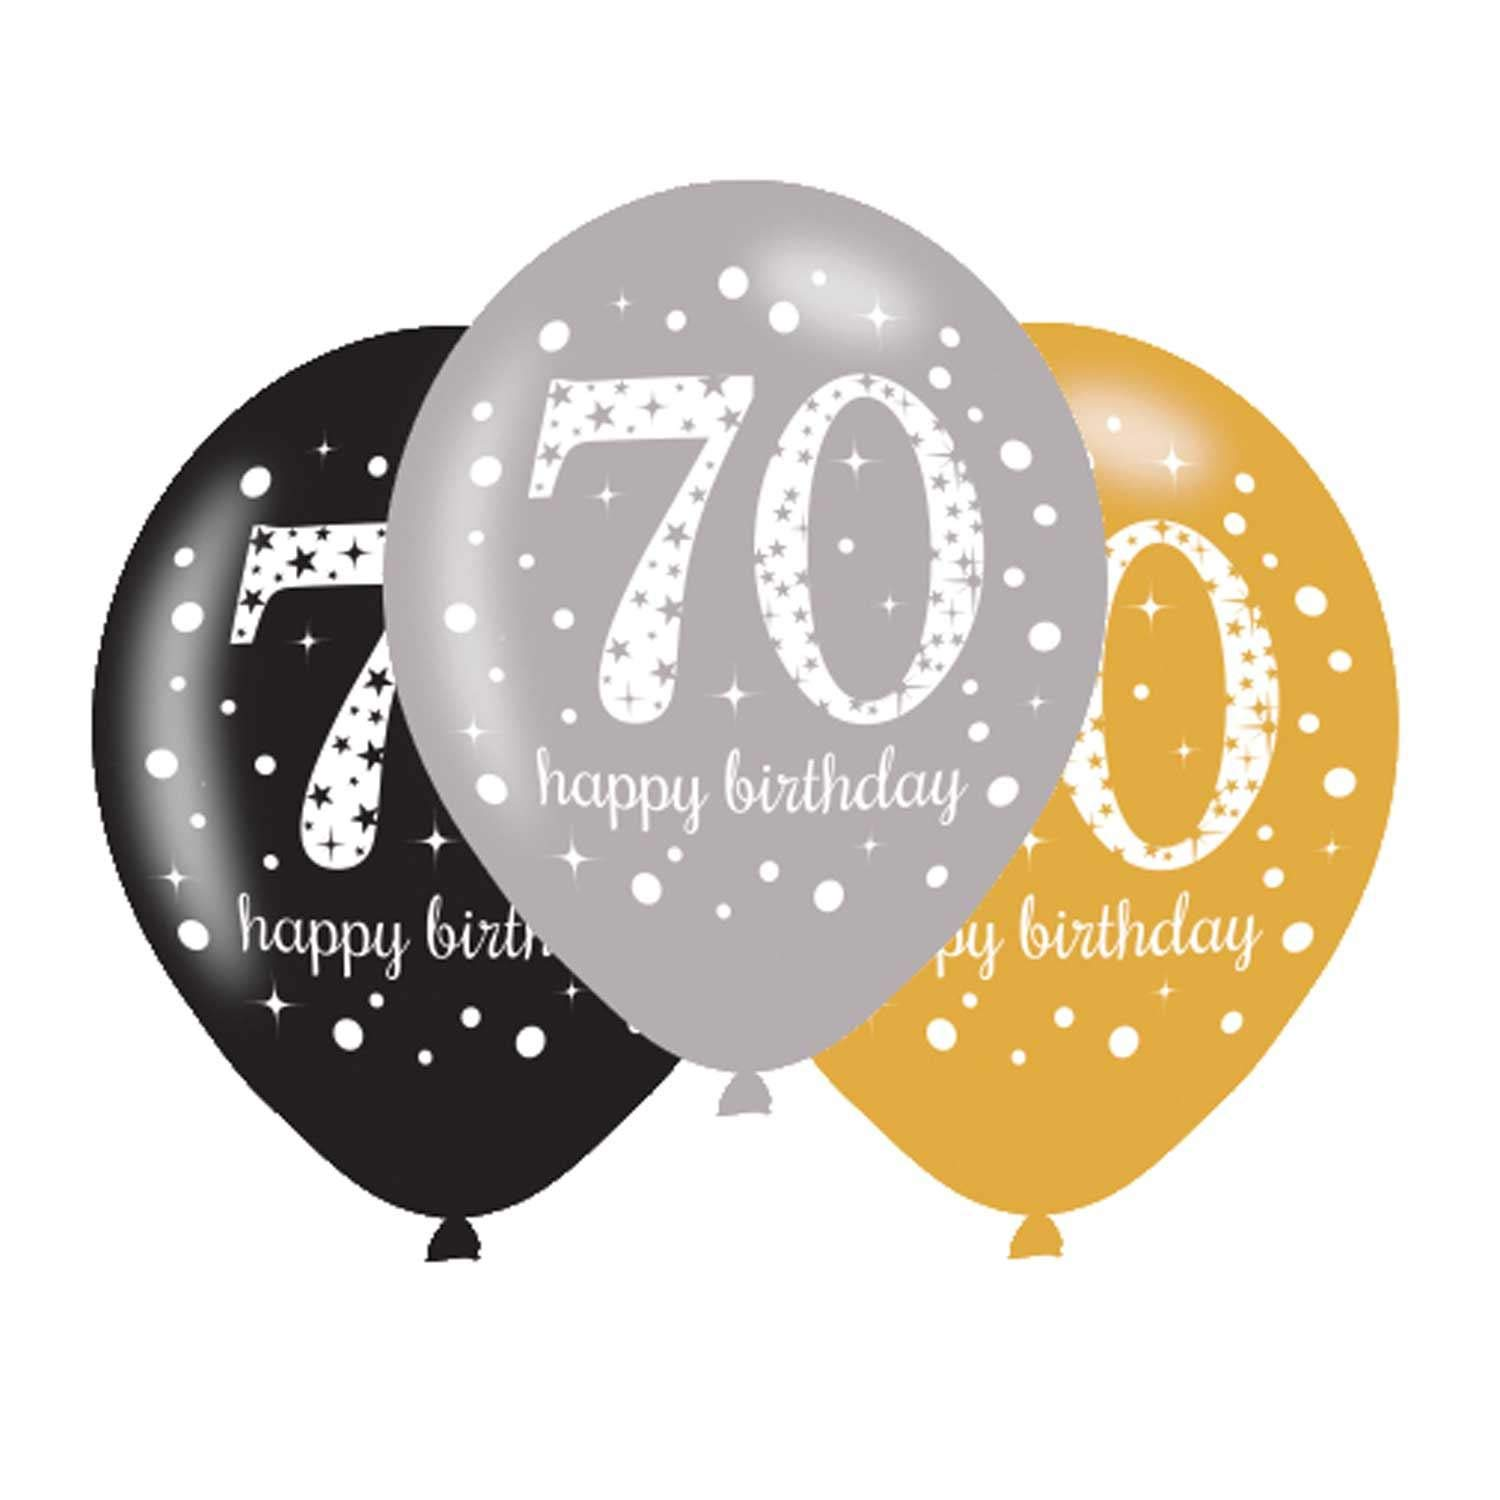 2 X 70th Birthday Balloons Black Silver Gold Pack Of 6 Amazoncouk DIY Tools